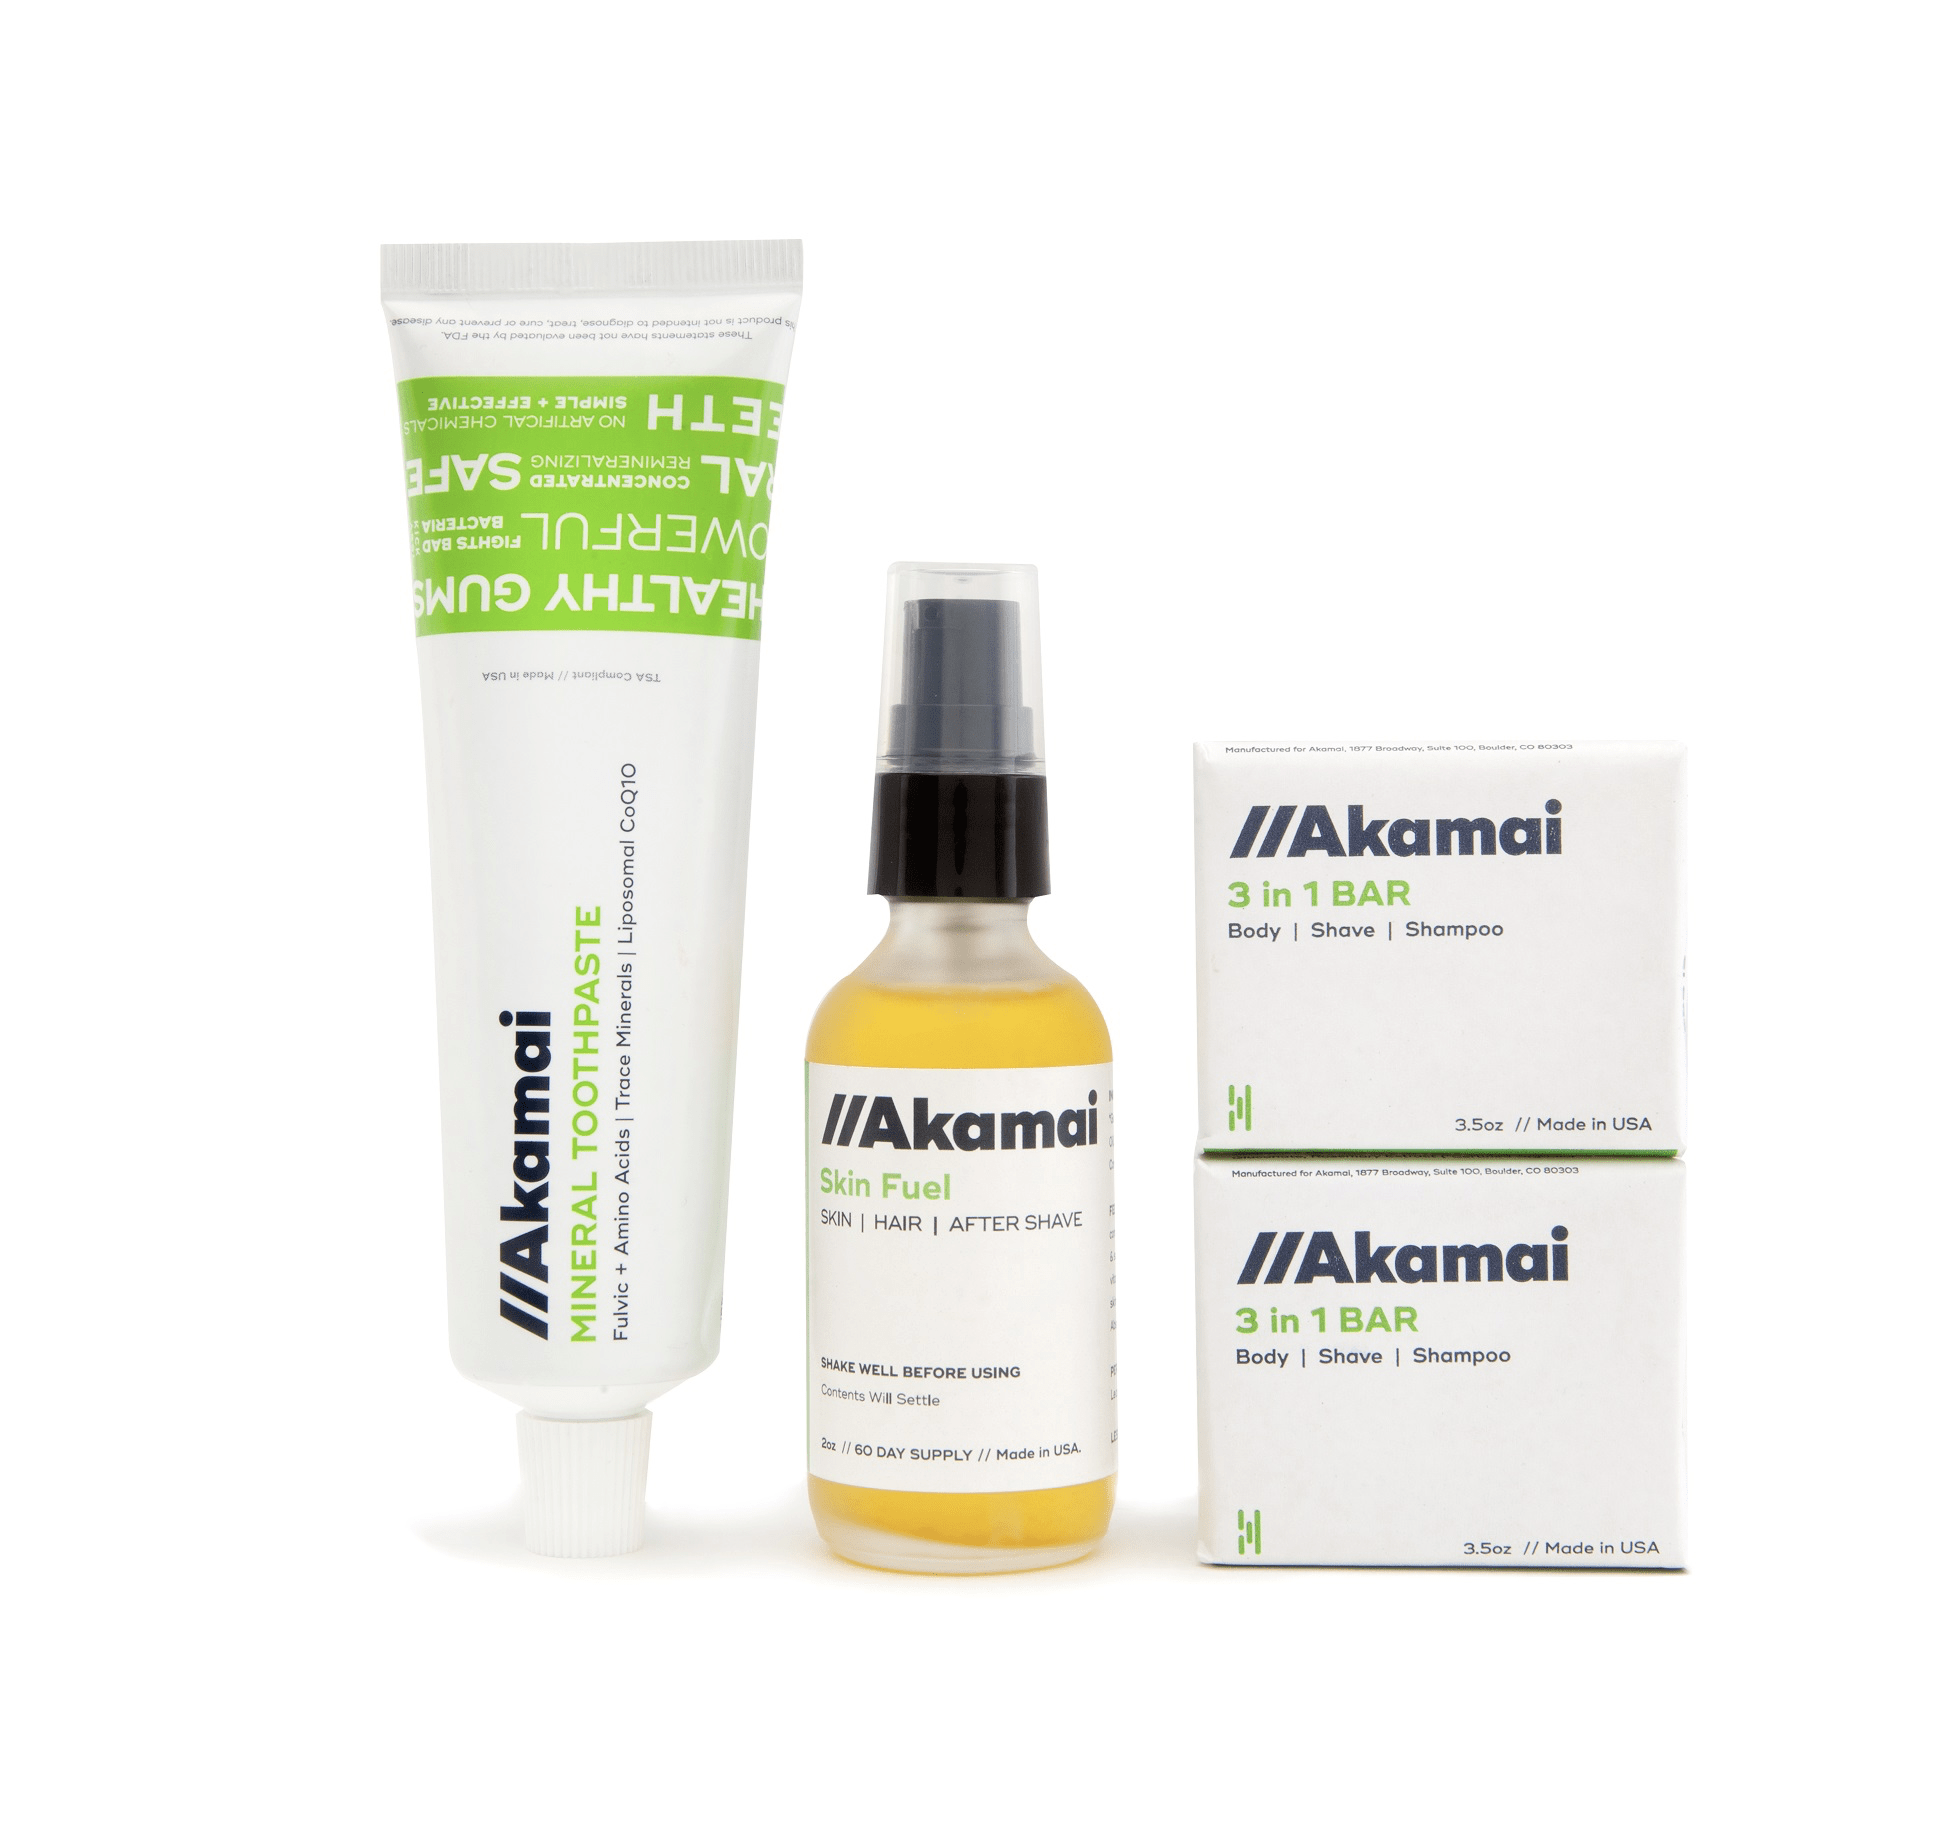 Akamai Black Friday Coupon: 25% Off Natural & Eco-Friendly Basics!